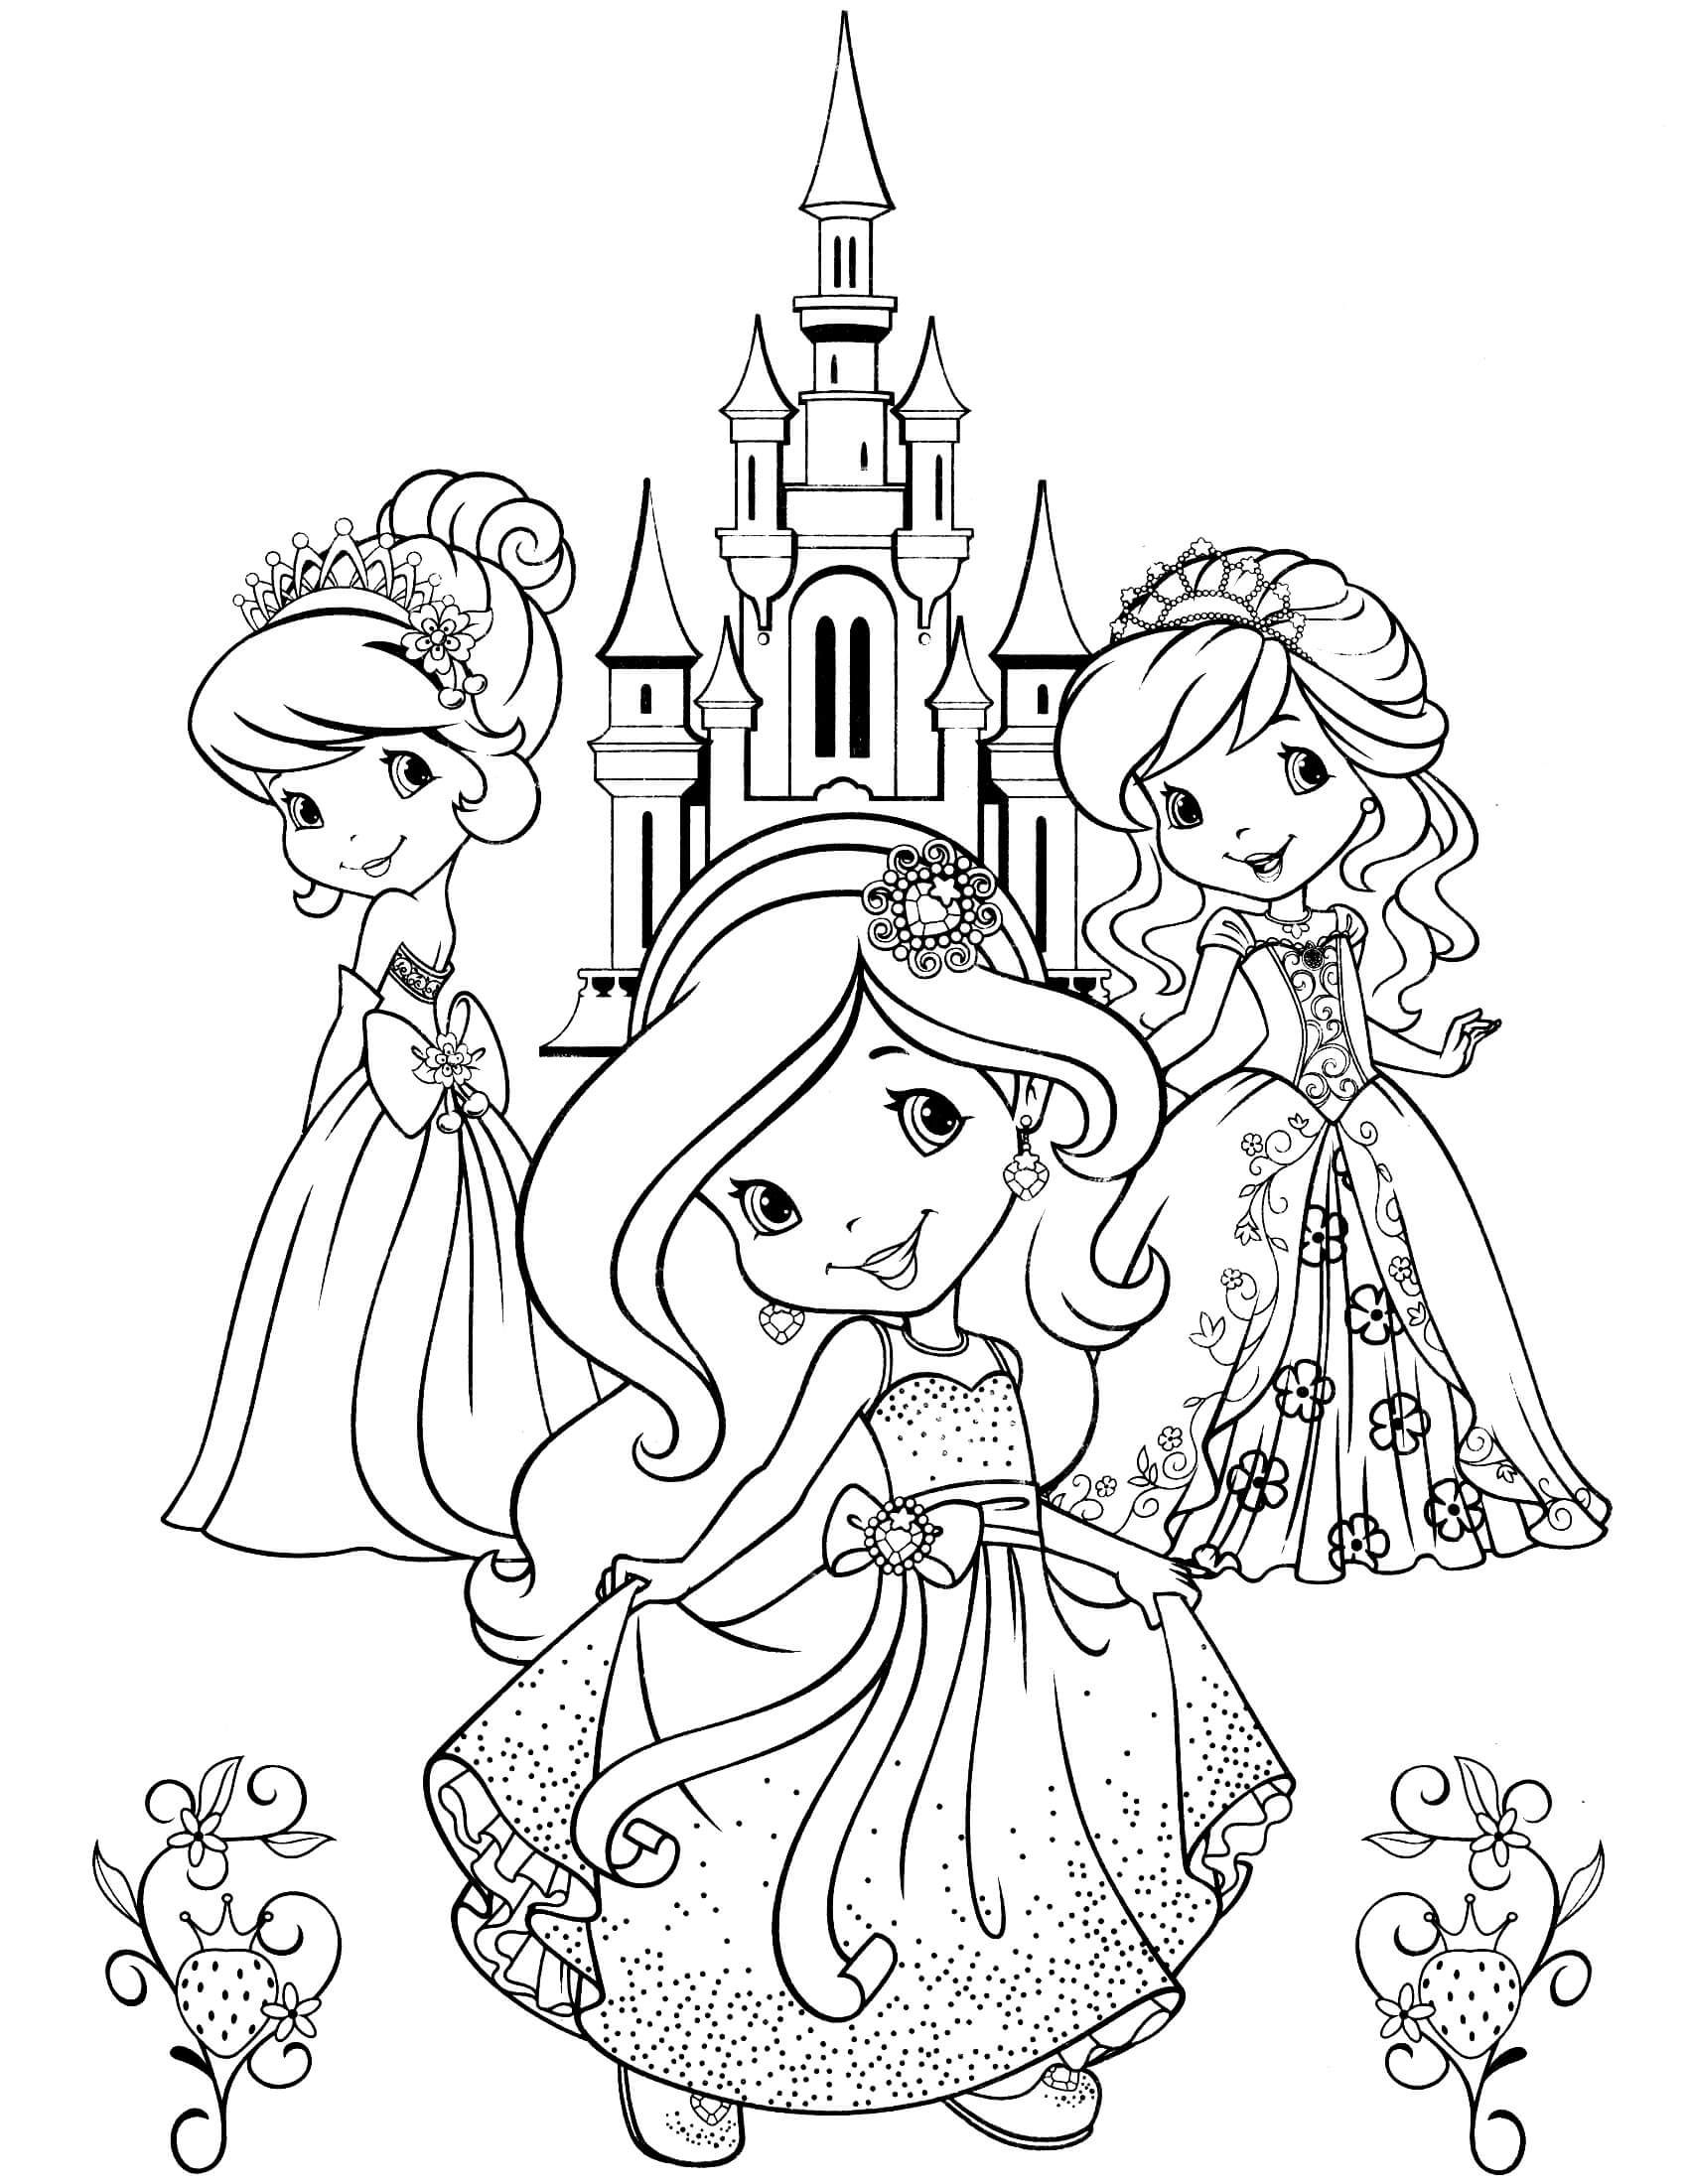 strawberry shortcake coloring page | sssd | Strawberry